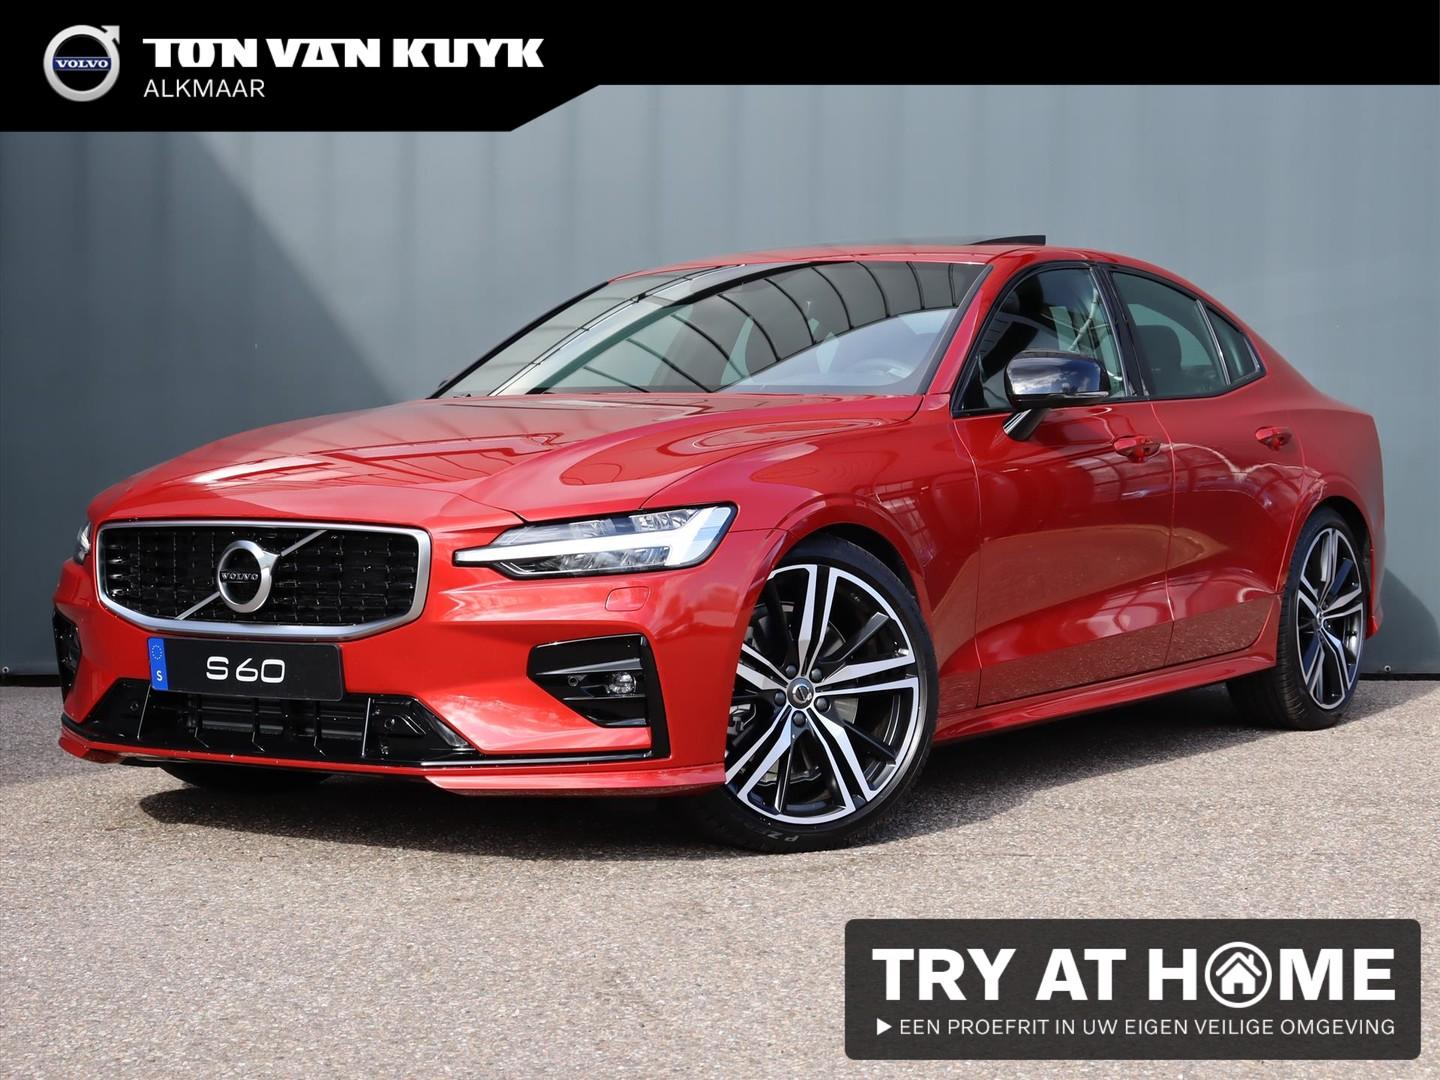 Volvo S60 T5 automaat r-design / intro edition / luxury line / styling kit